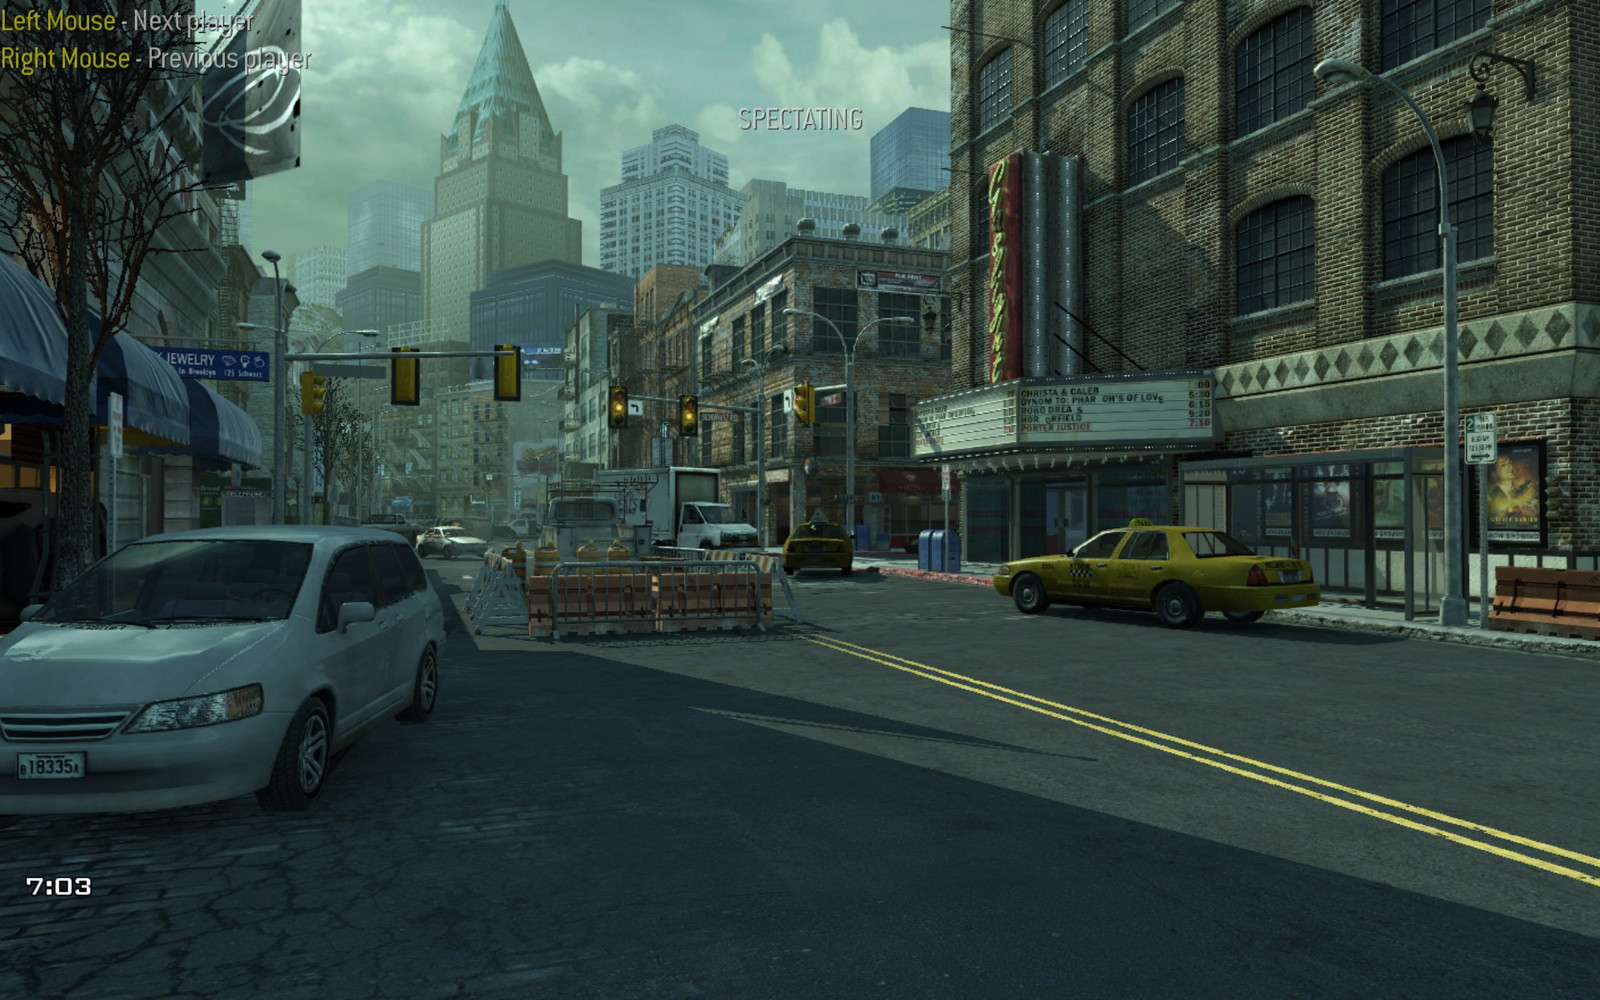 COD: MW3 Intersection Lighting